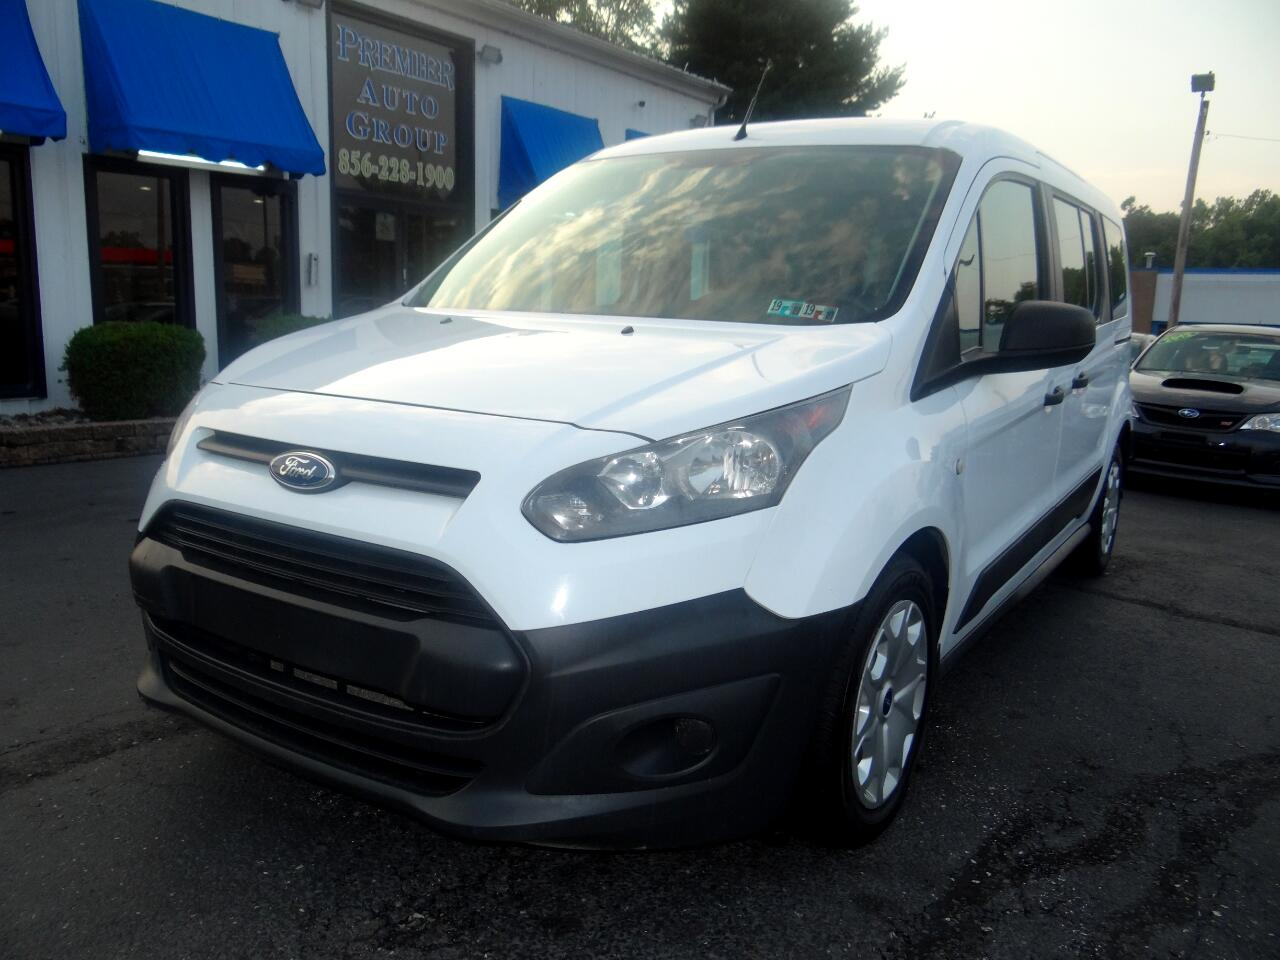 2014 Ford Transit Connect Wagon Extended Passenger Van XL